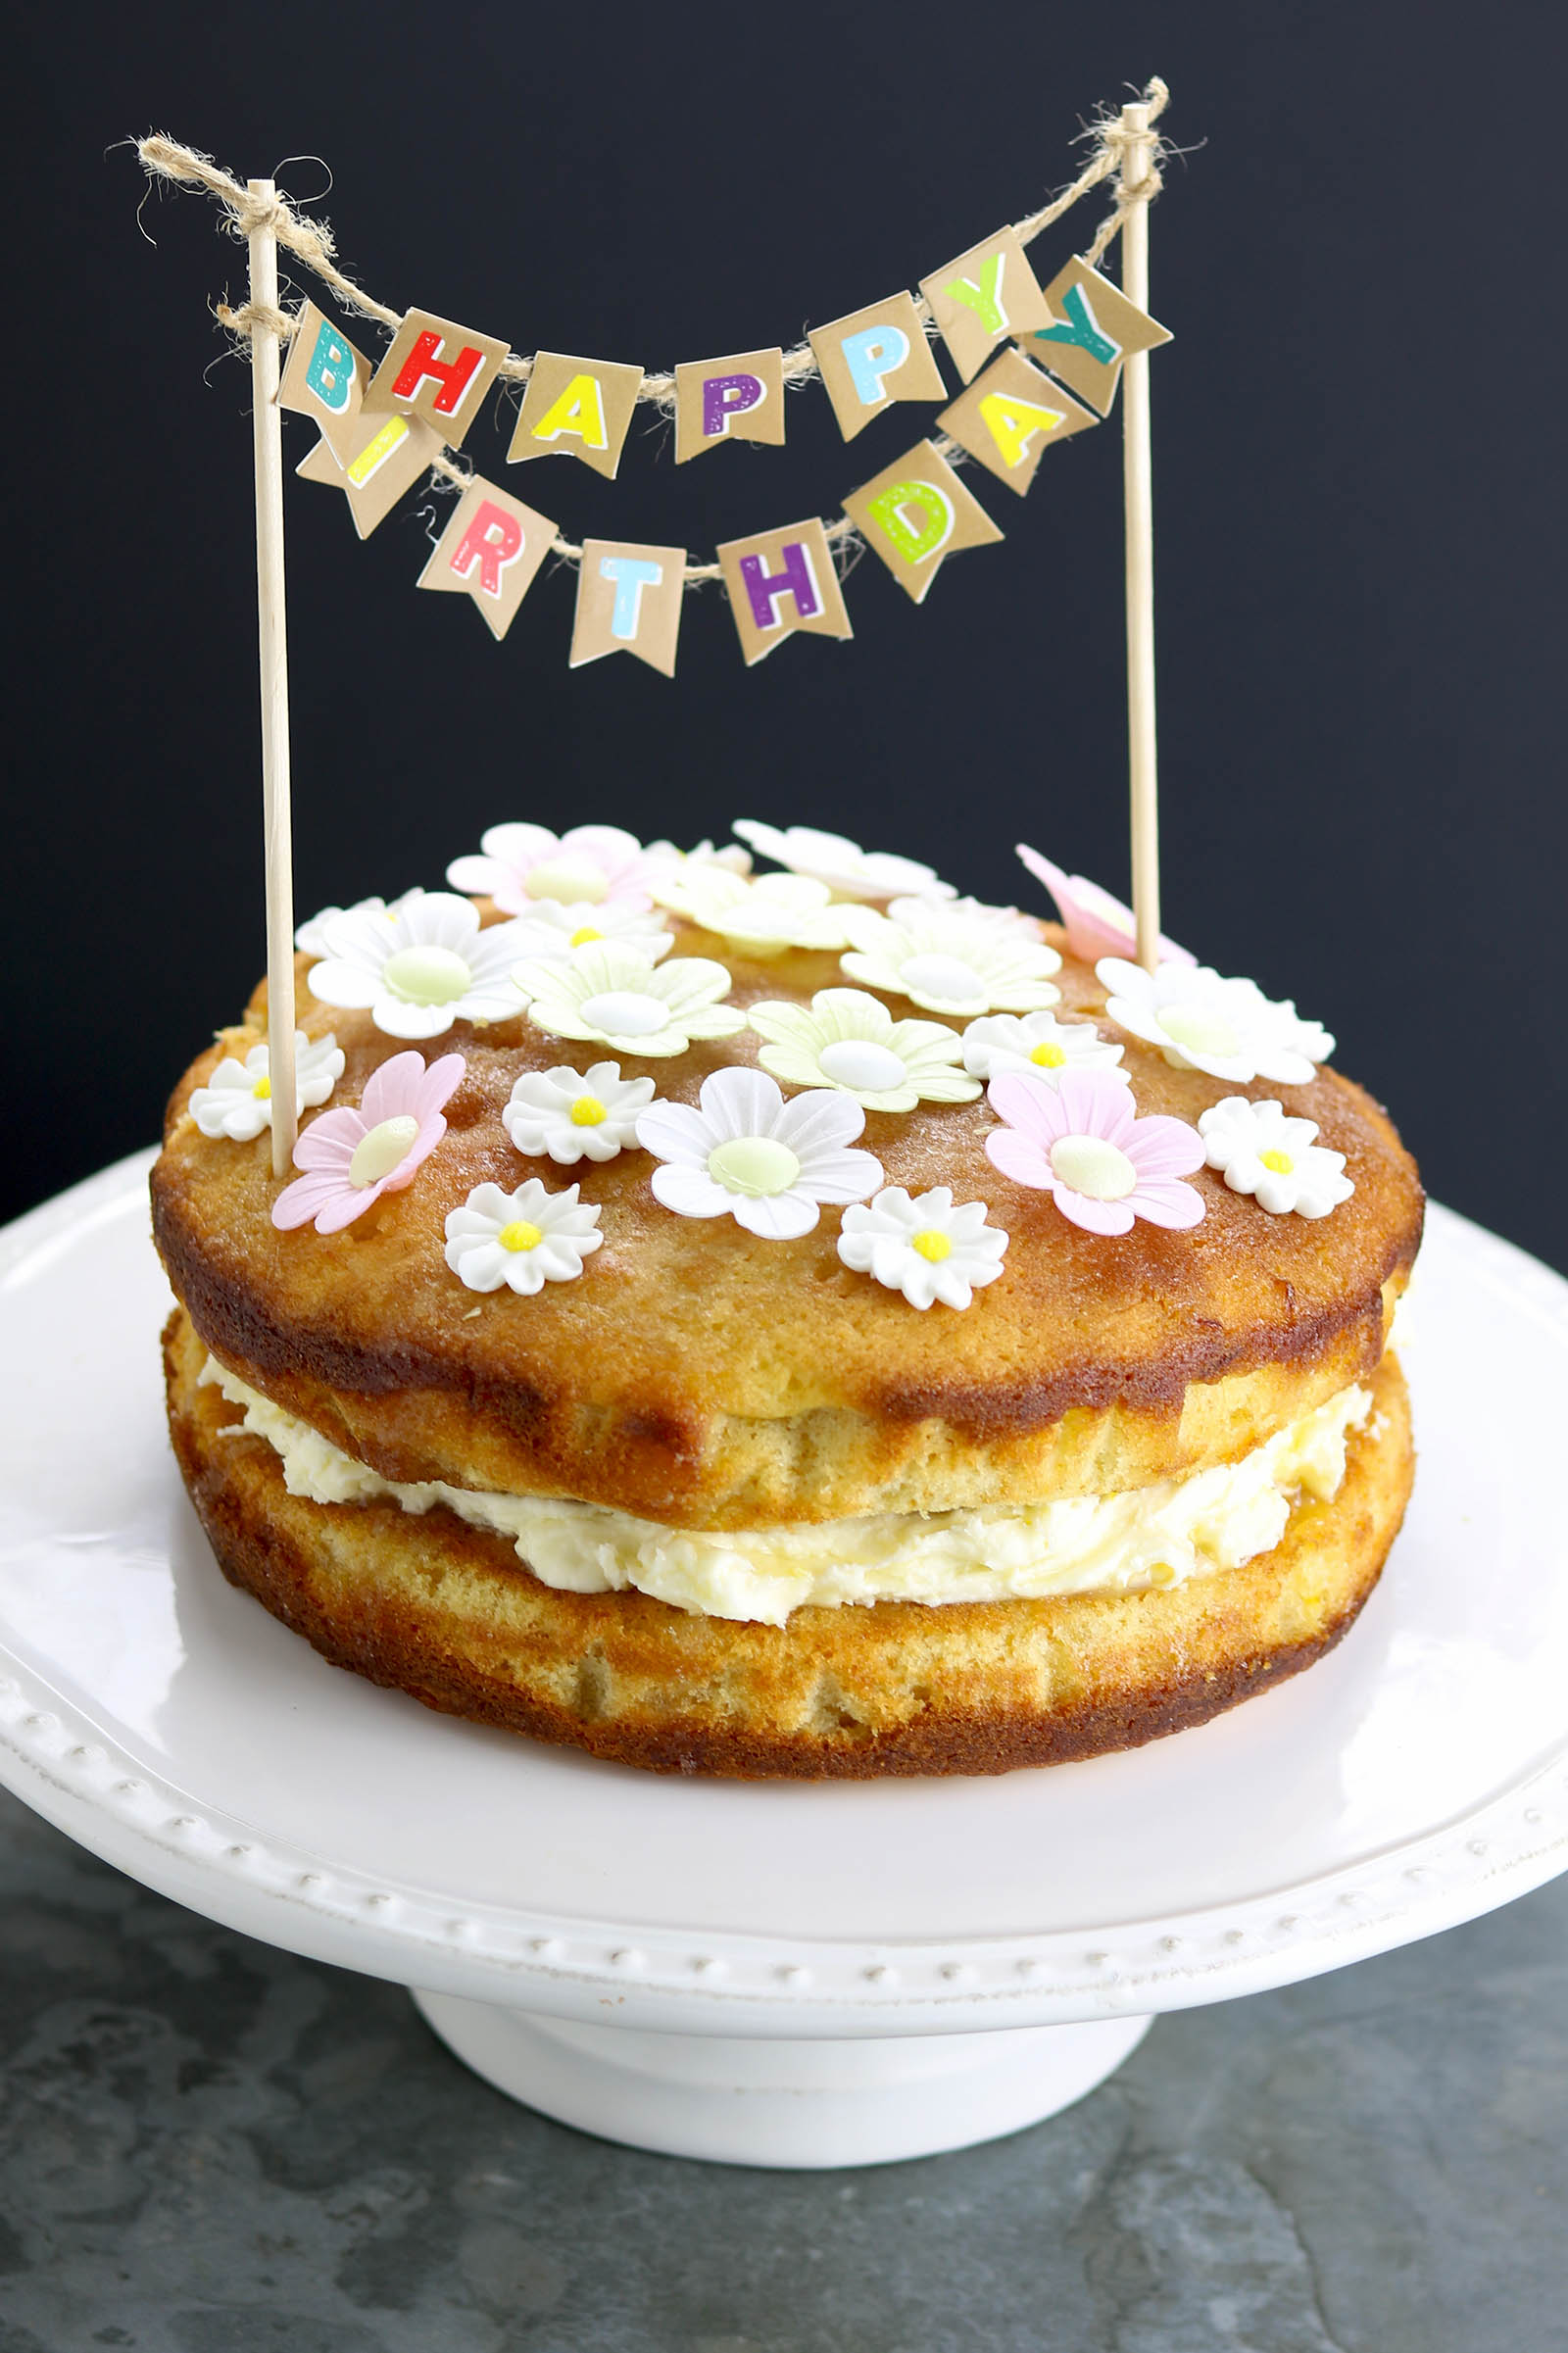 Marvelous Lemon Drizzle Birthday Cake The Last Food Blog Funny Birthday Cards Online Inifodamsfinfo